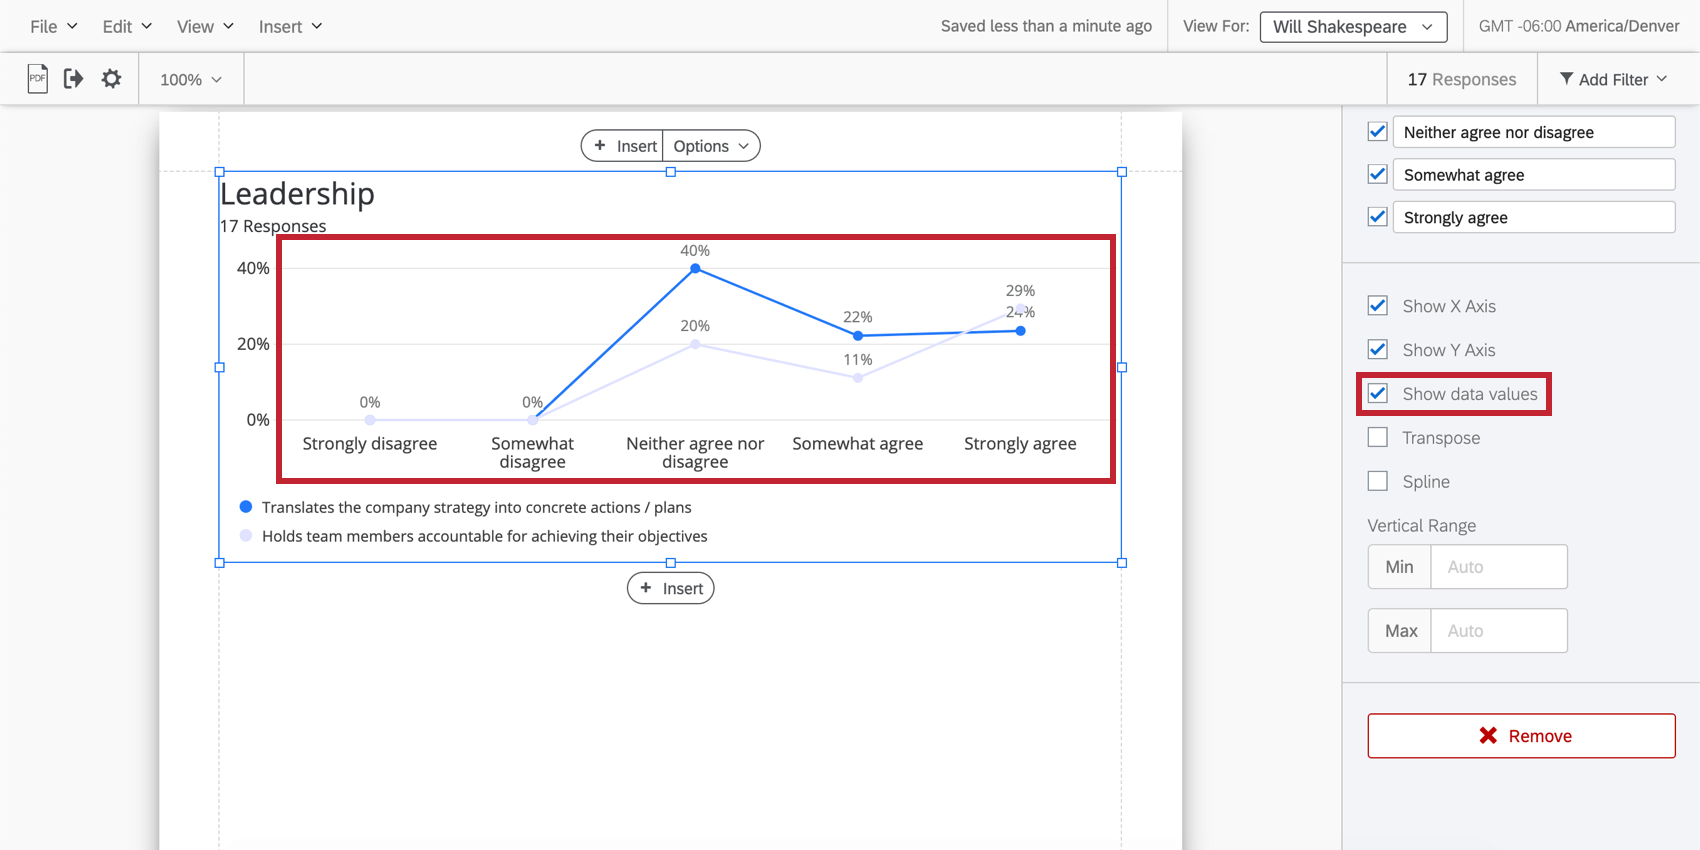 selecting show data values adds the value above every dot on the line chart